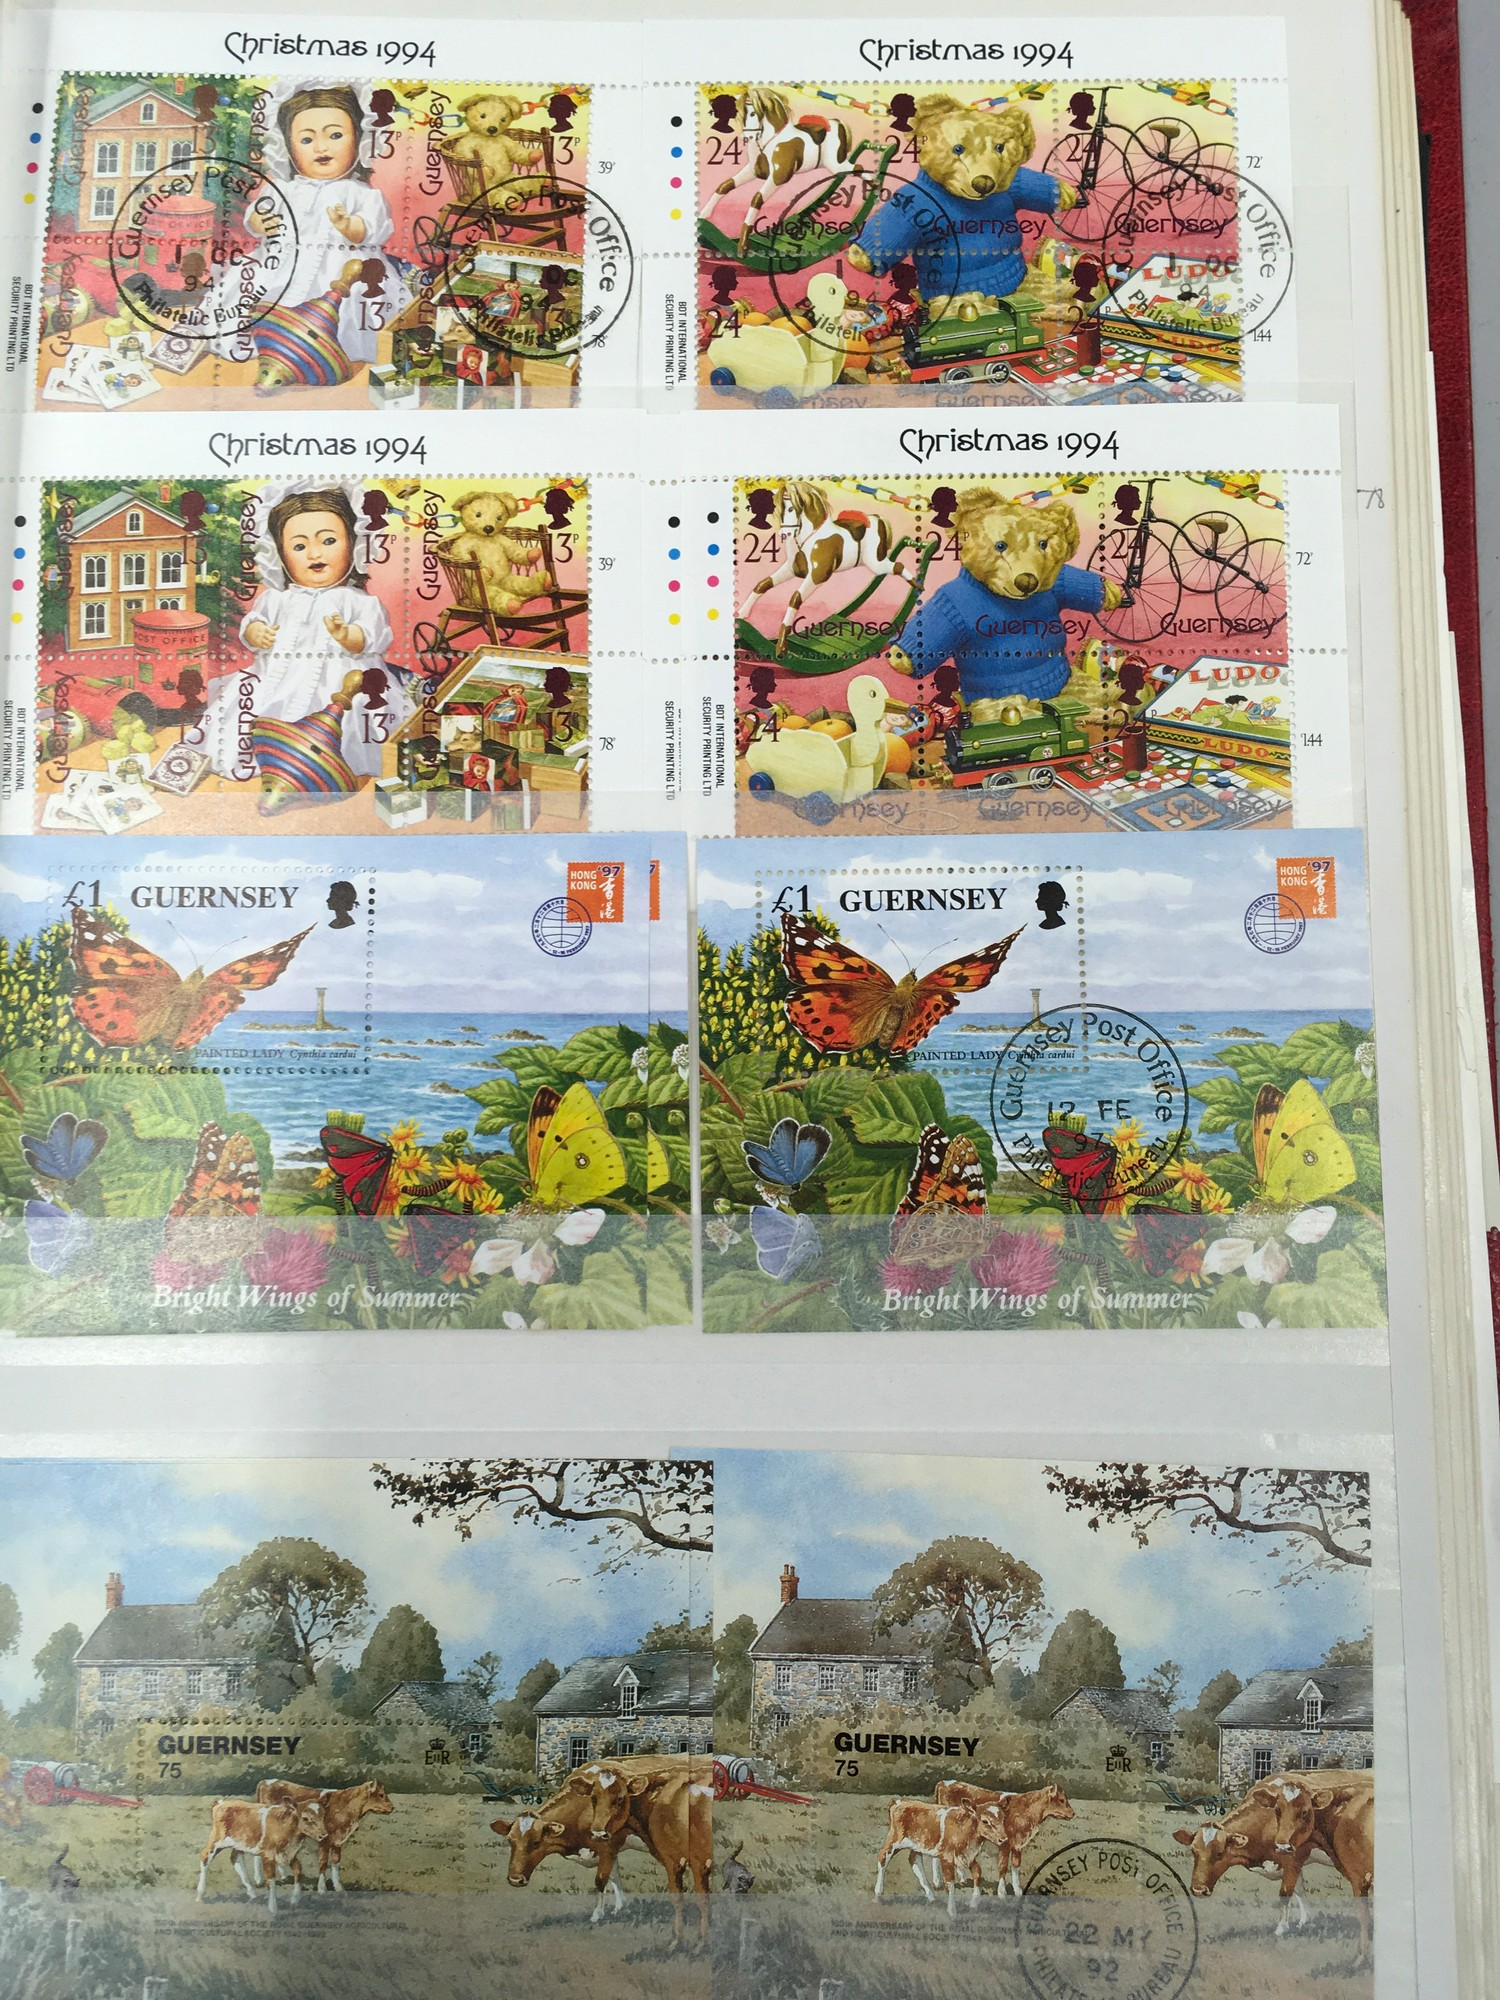 3 x Albums containing Channel Islands, Jersey Guernsey and Alderney over £800 in mint stamps. - Image 9 of 21